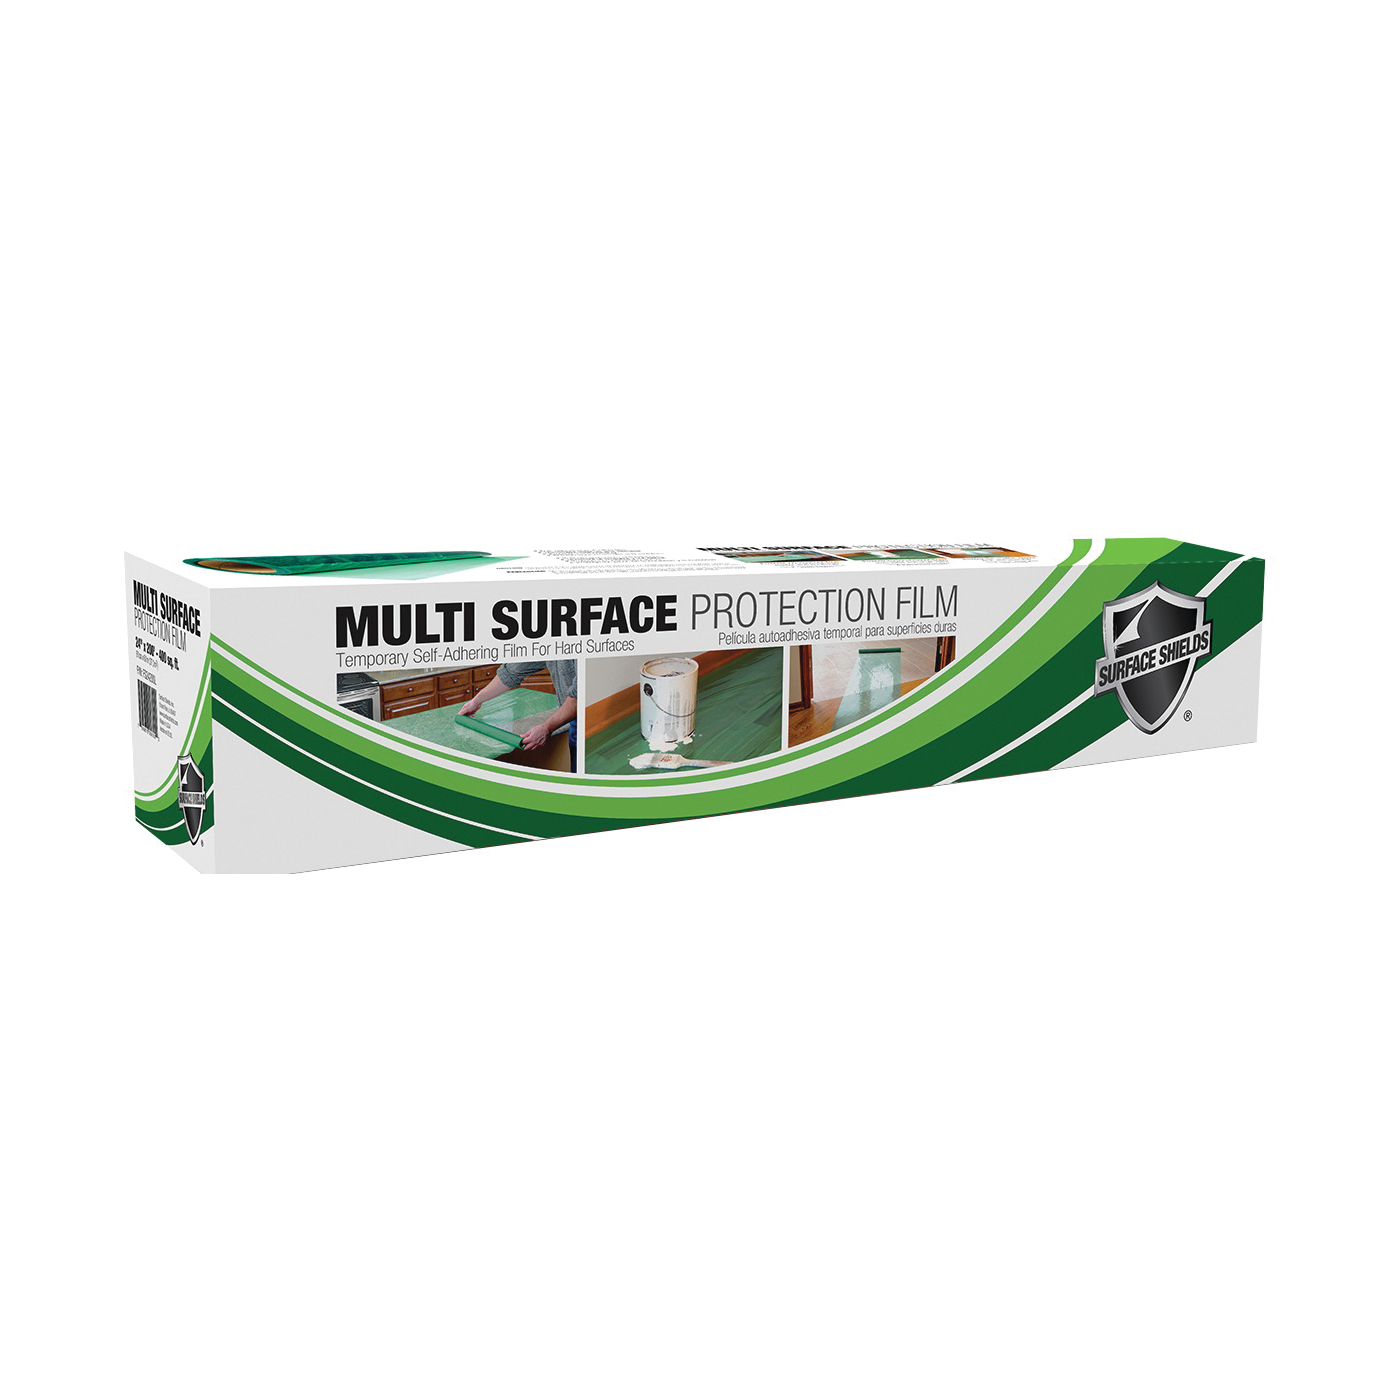 Picture of SURFACE SHIELDS MU2450W Protection Film, 50 ft L, 24 in W, 3 mil Thick, Polyethylene, Green